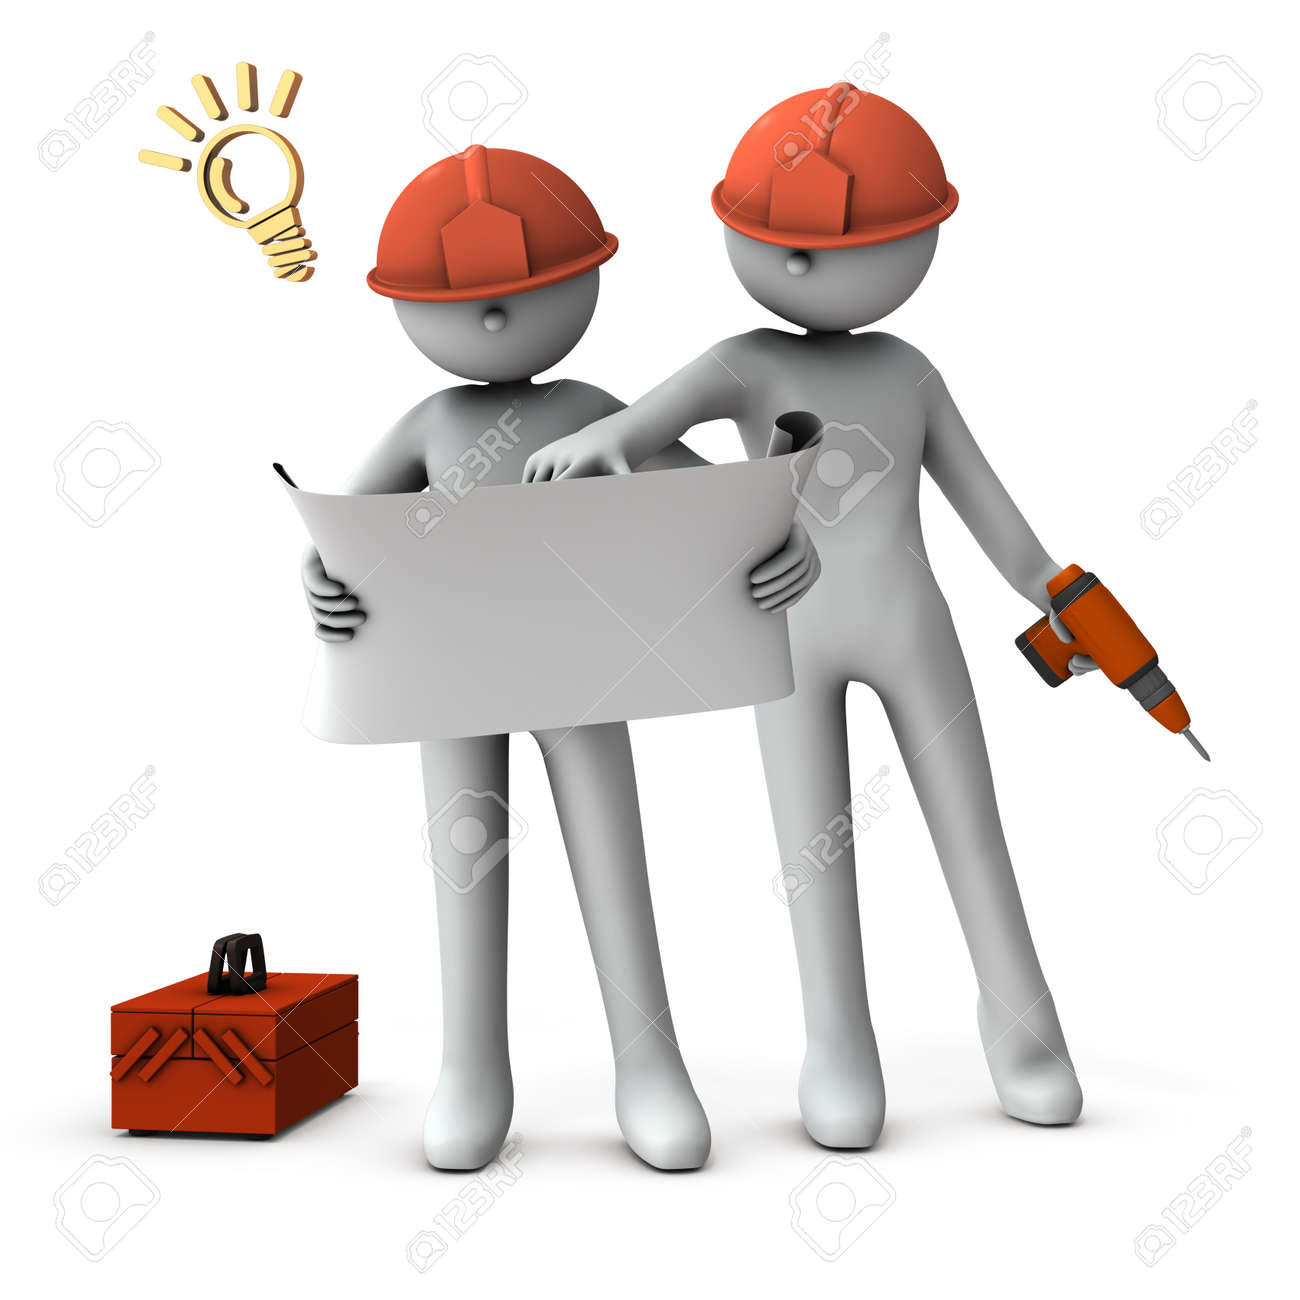 Engineers who check drawings and solve problems. White background. 3D rendering. - 154731488